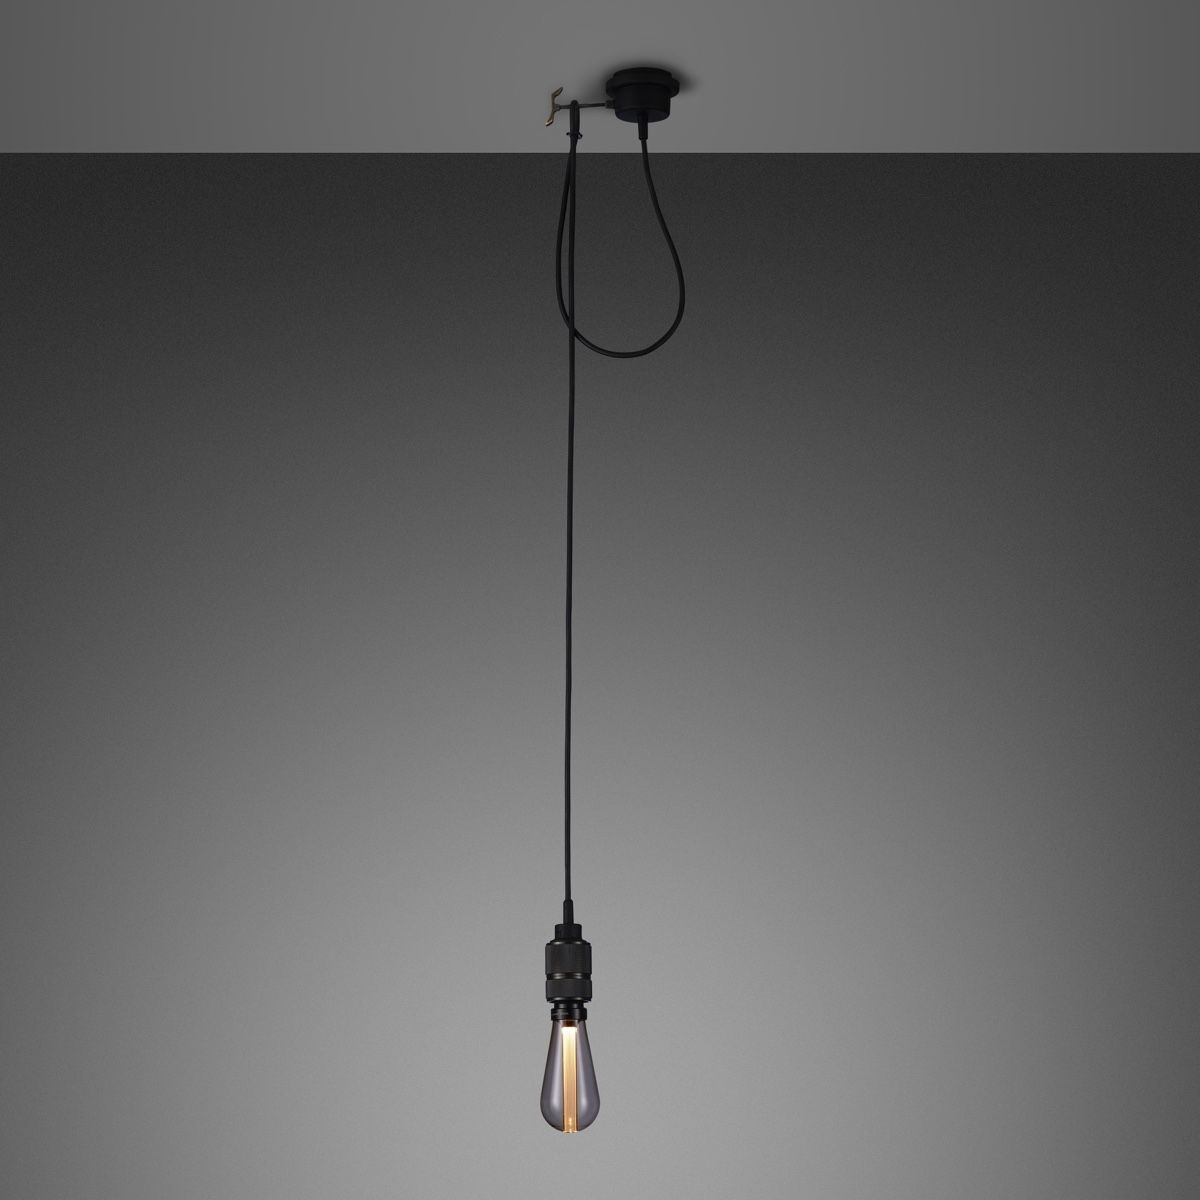 Buster + Punch Hooked Pendant 1.0 Nude